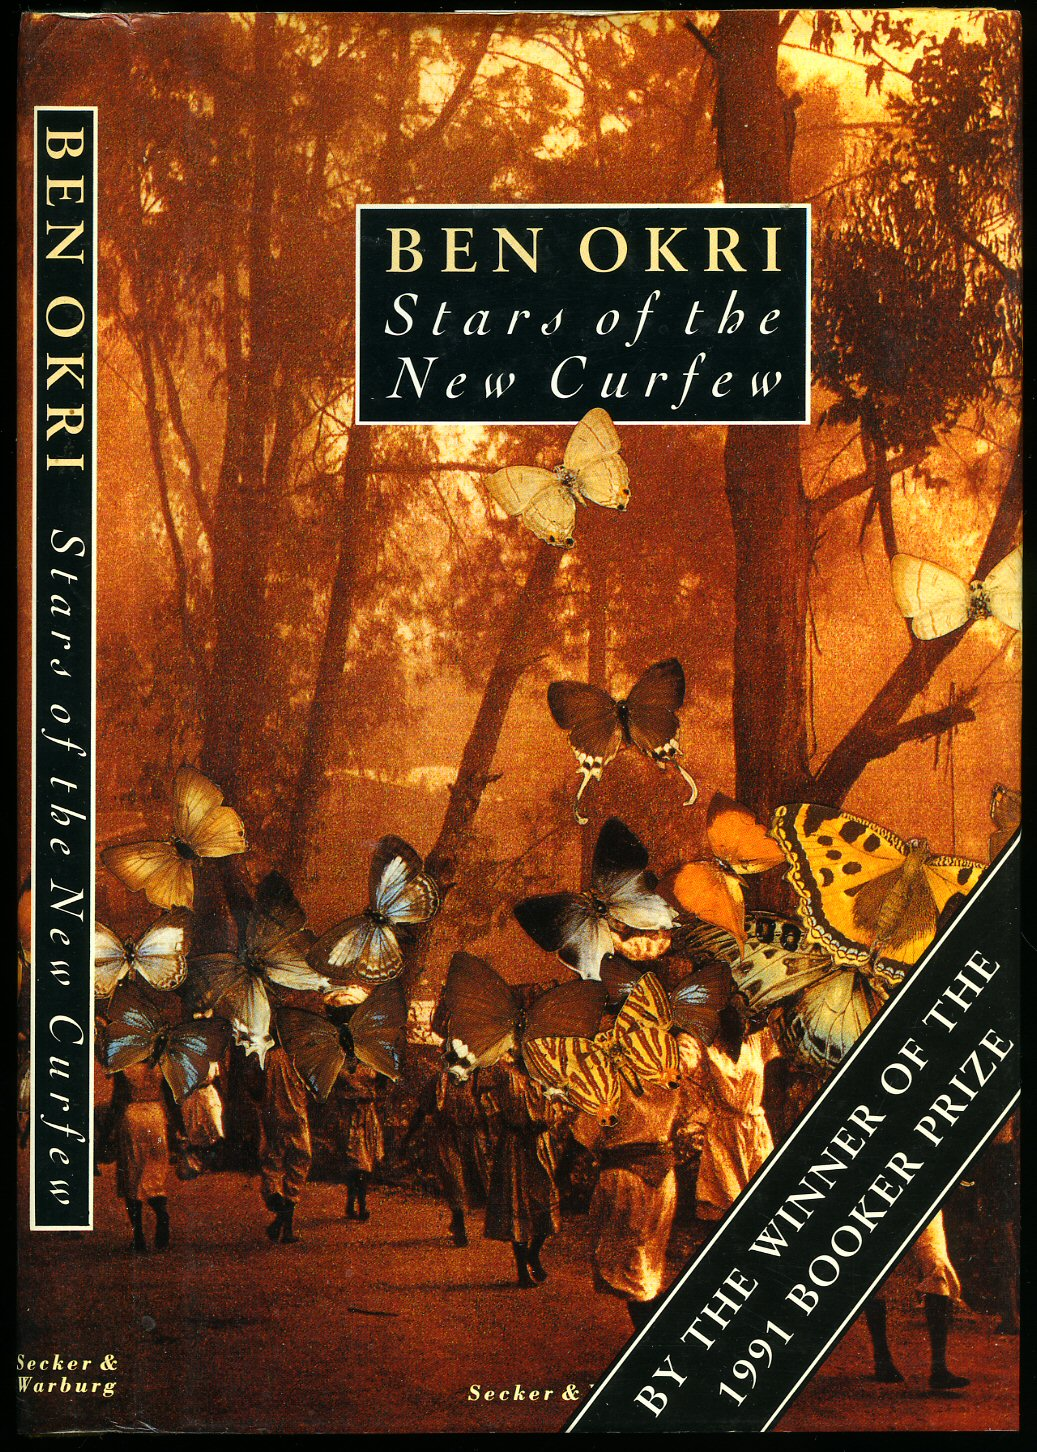 a review of flowers and shadows by ben okri Okri's success as a writer began when he published his first novel flowers and shadows, at age 21 from 1983 to 1986 he served west africa magazine as poetry editor and was a regular contributor to the bbc world service between 1983 and 1985, continuing to publish throughout this period.